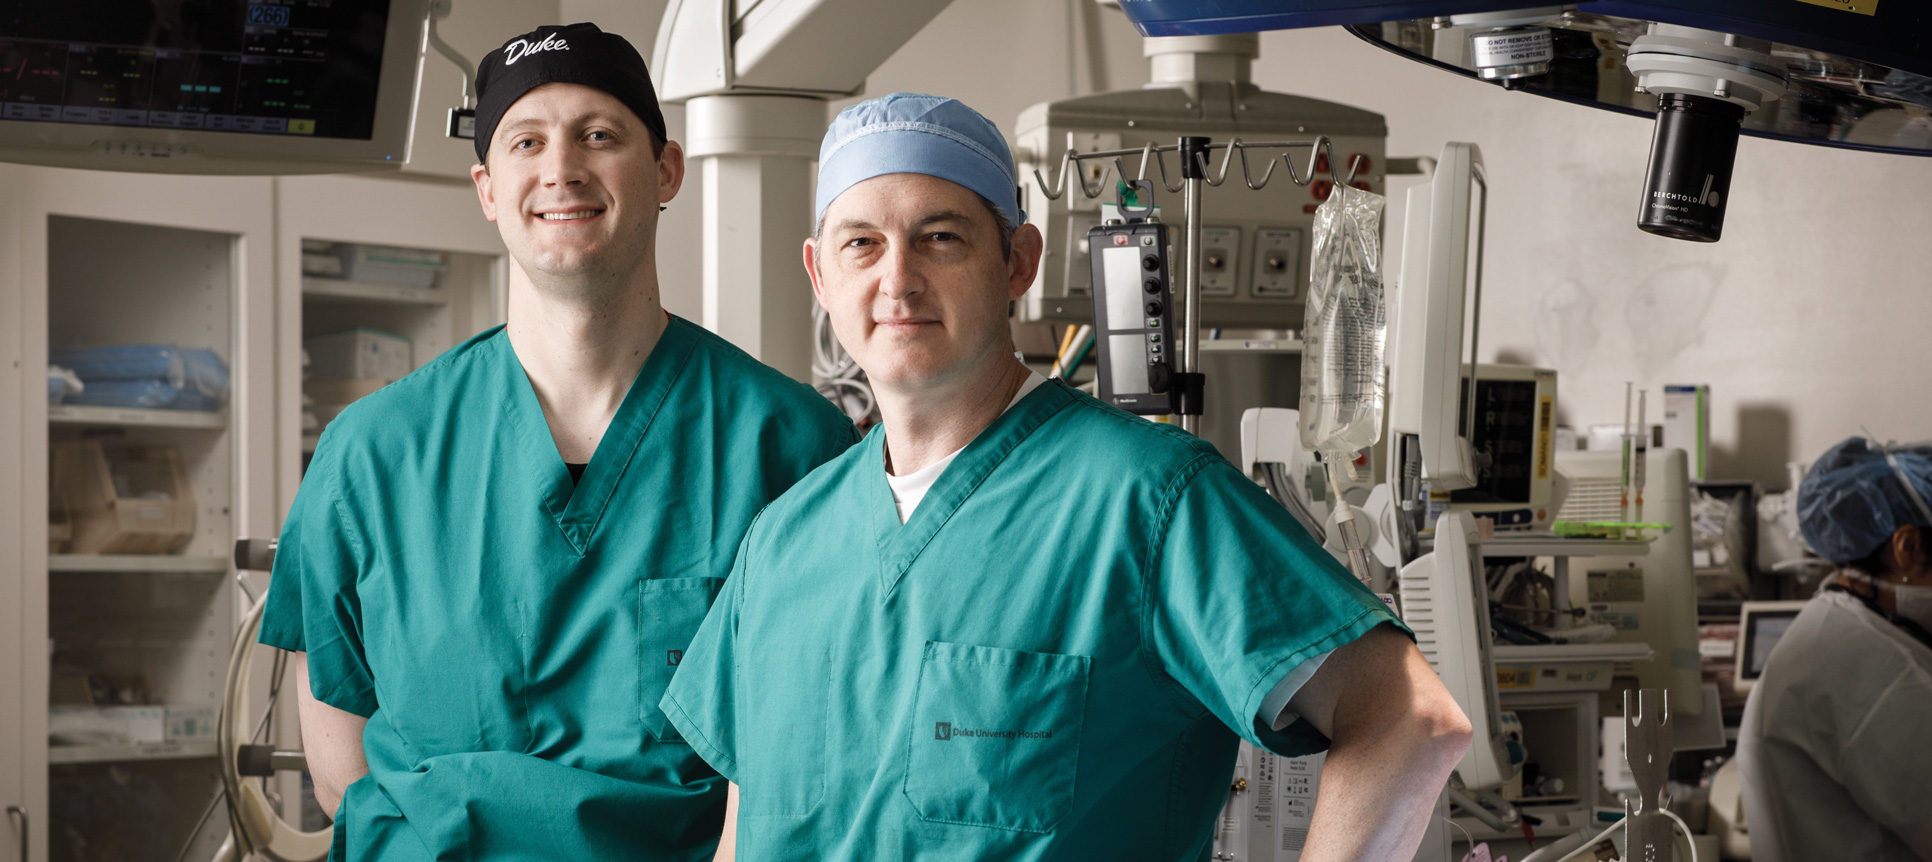 Joseph W. Turek, Md, PhD, chief of pediatric cardiac surgery, is pictured with fellow pediatric heart surgeon Nick Andersen, MD.